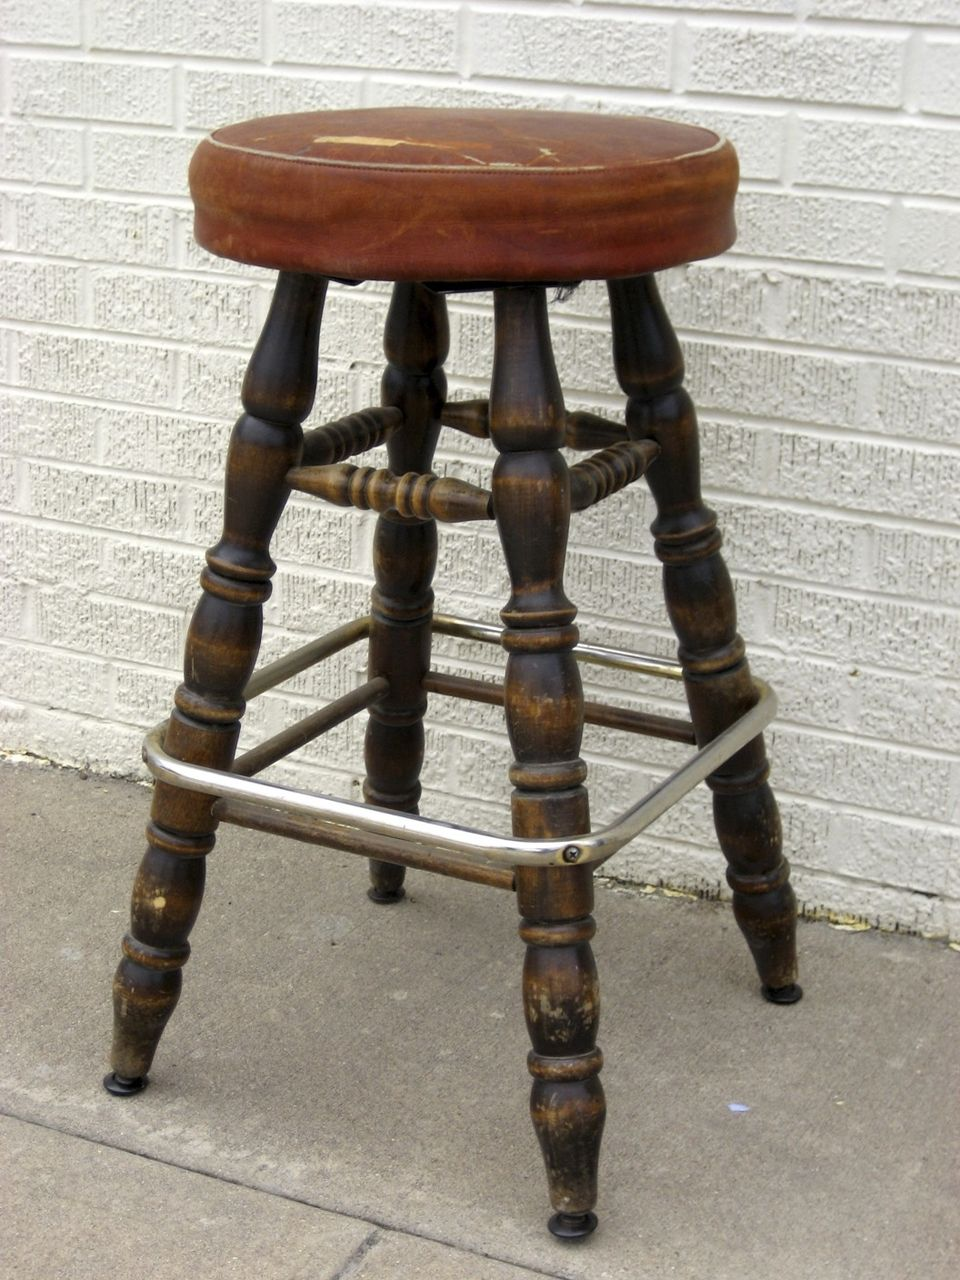 Antique wooden bar stools french country in europe and